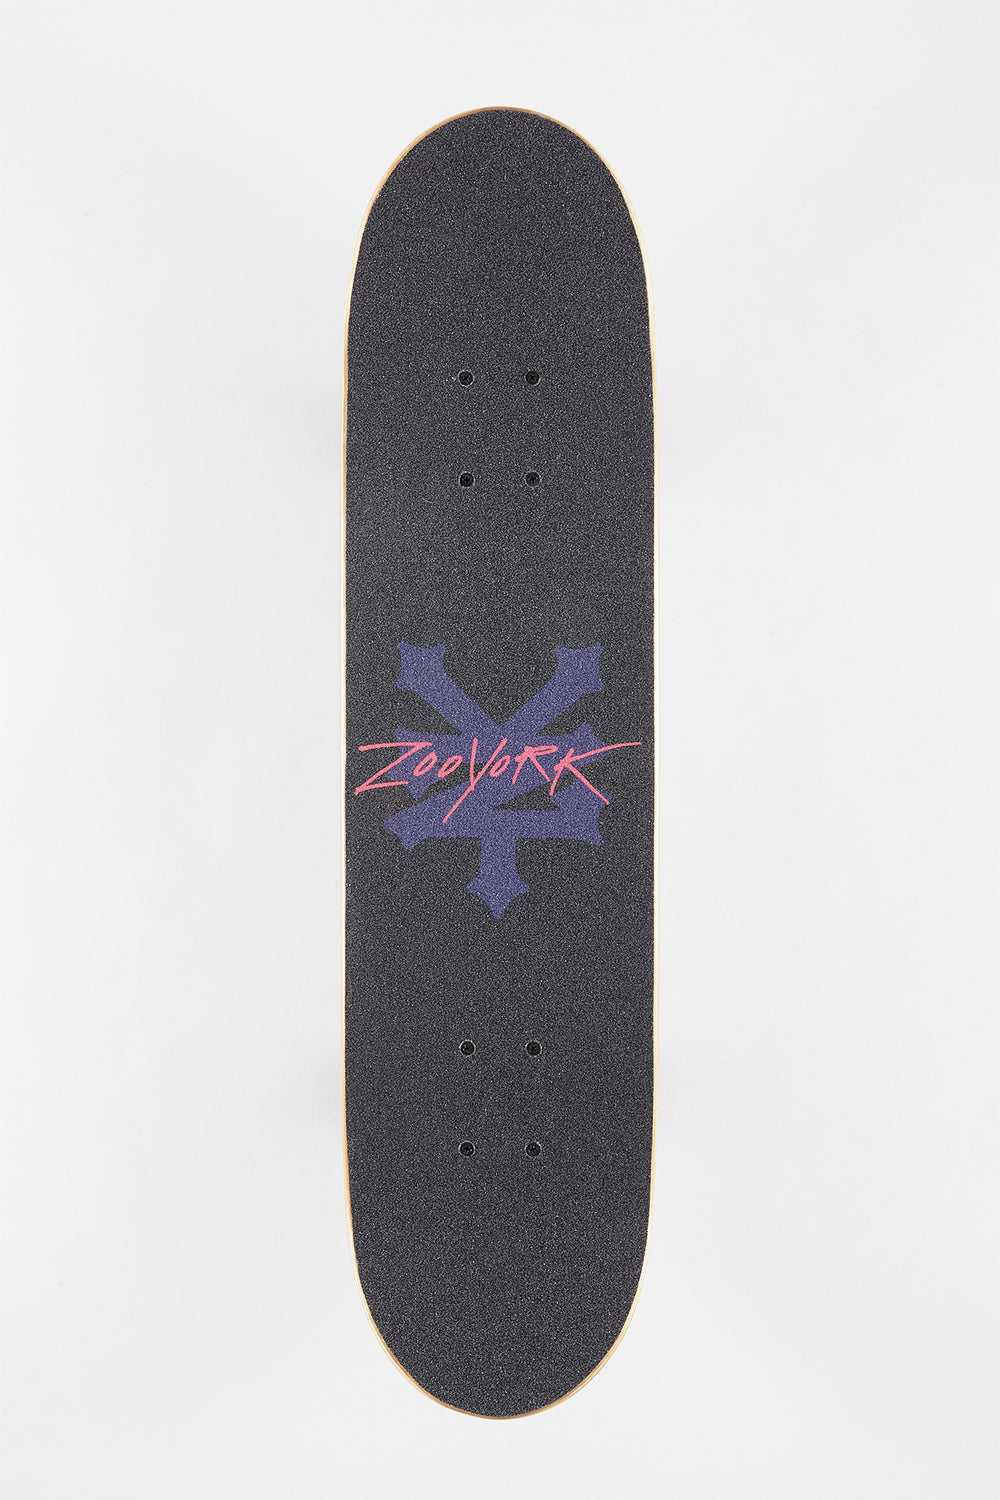 Zoo York Skull Mask Skateboard 7.75